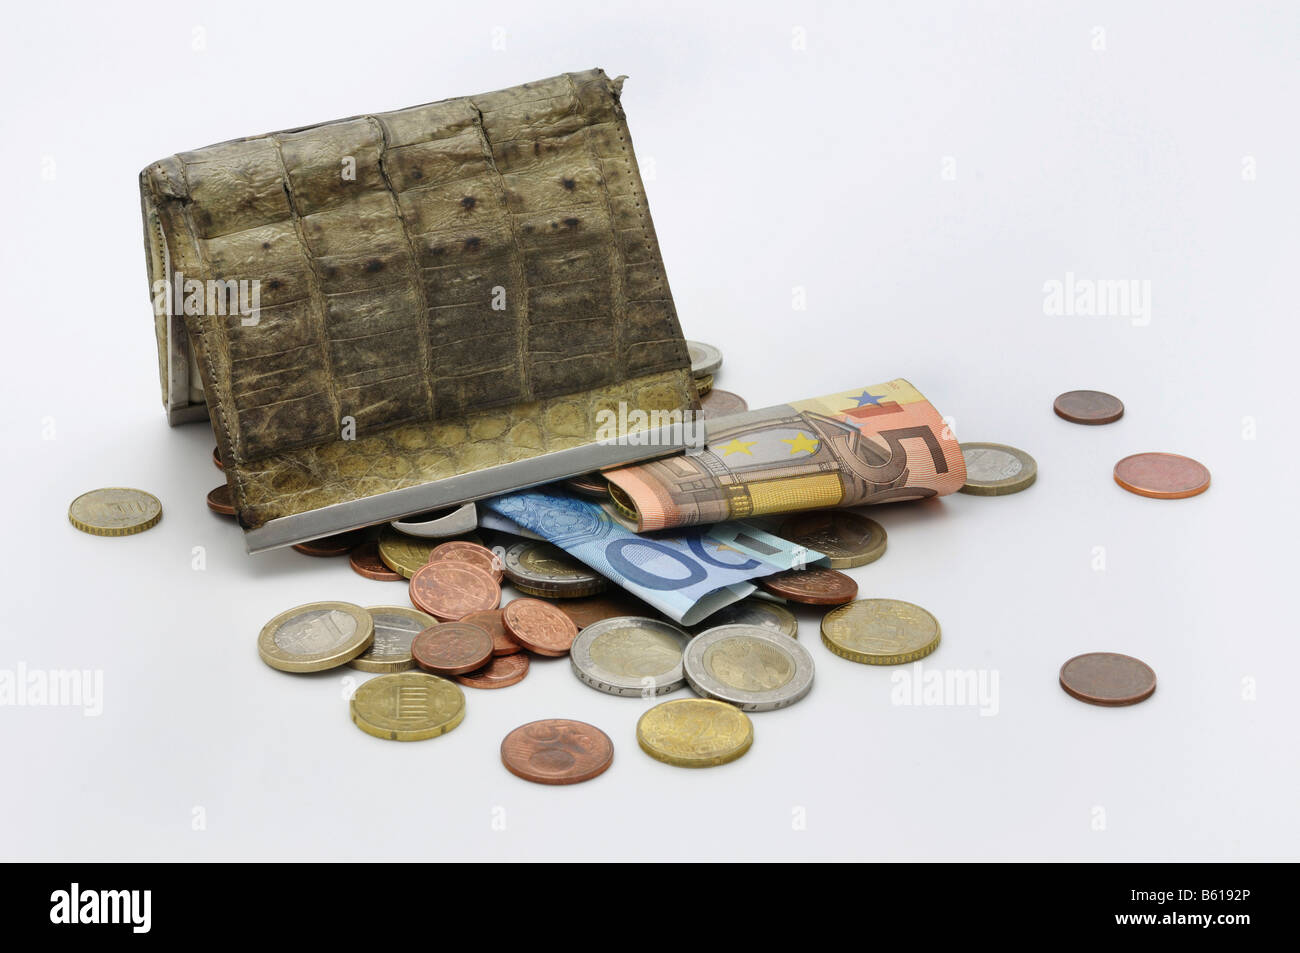 Old purse upside down, Euro bank notes and coins falling out, cash check - Stock Image